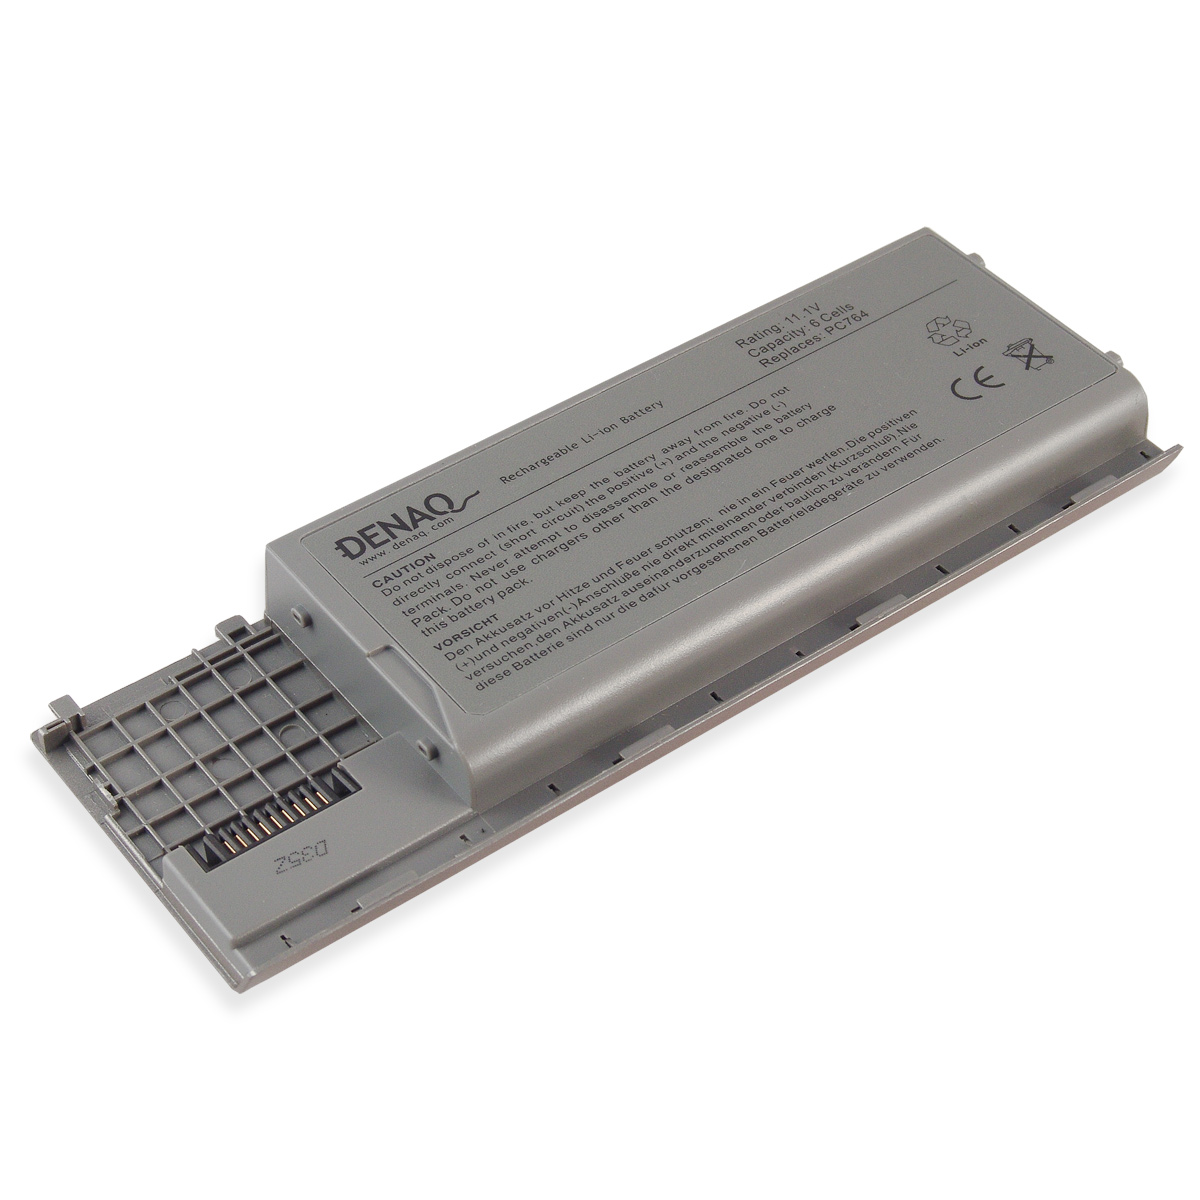 6-Cell 56Whr Li-Ion Laptop Battery for DELL Latitude D620, D630, D630 XFR, D630N, D631; Dell Precision M2300